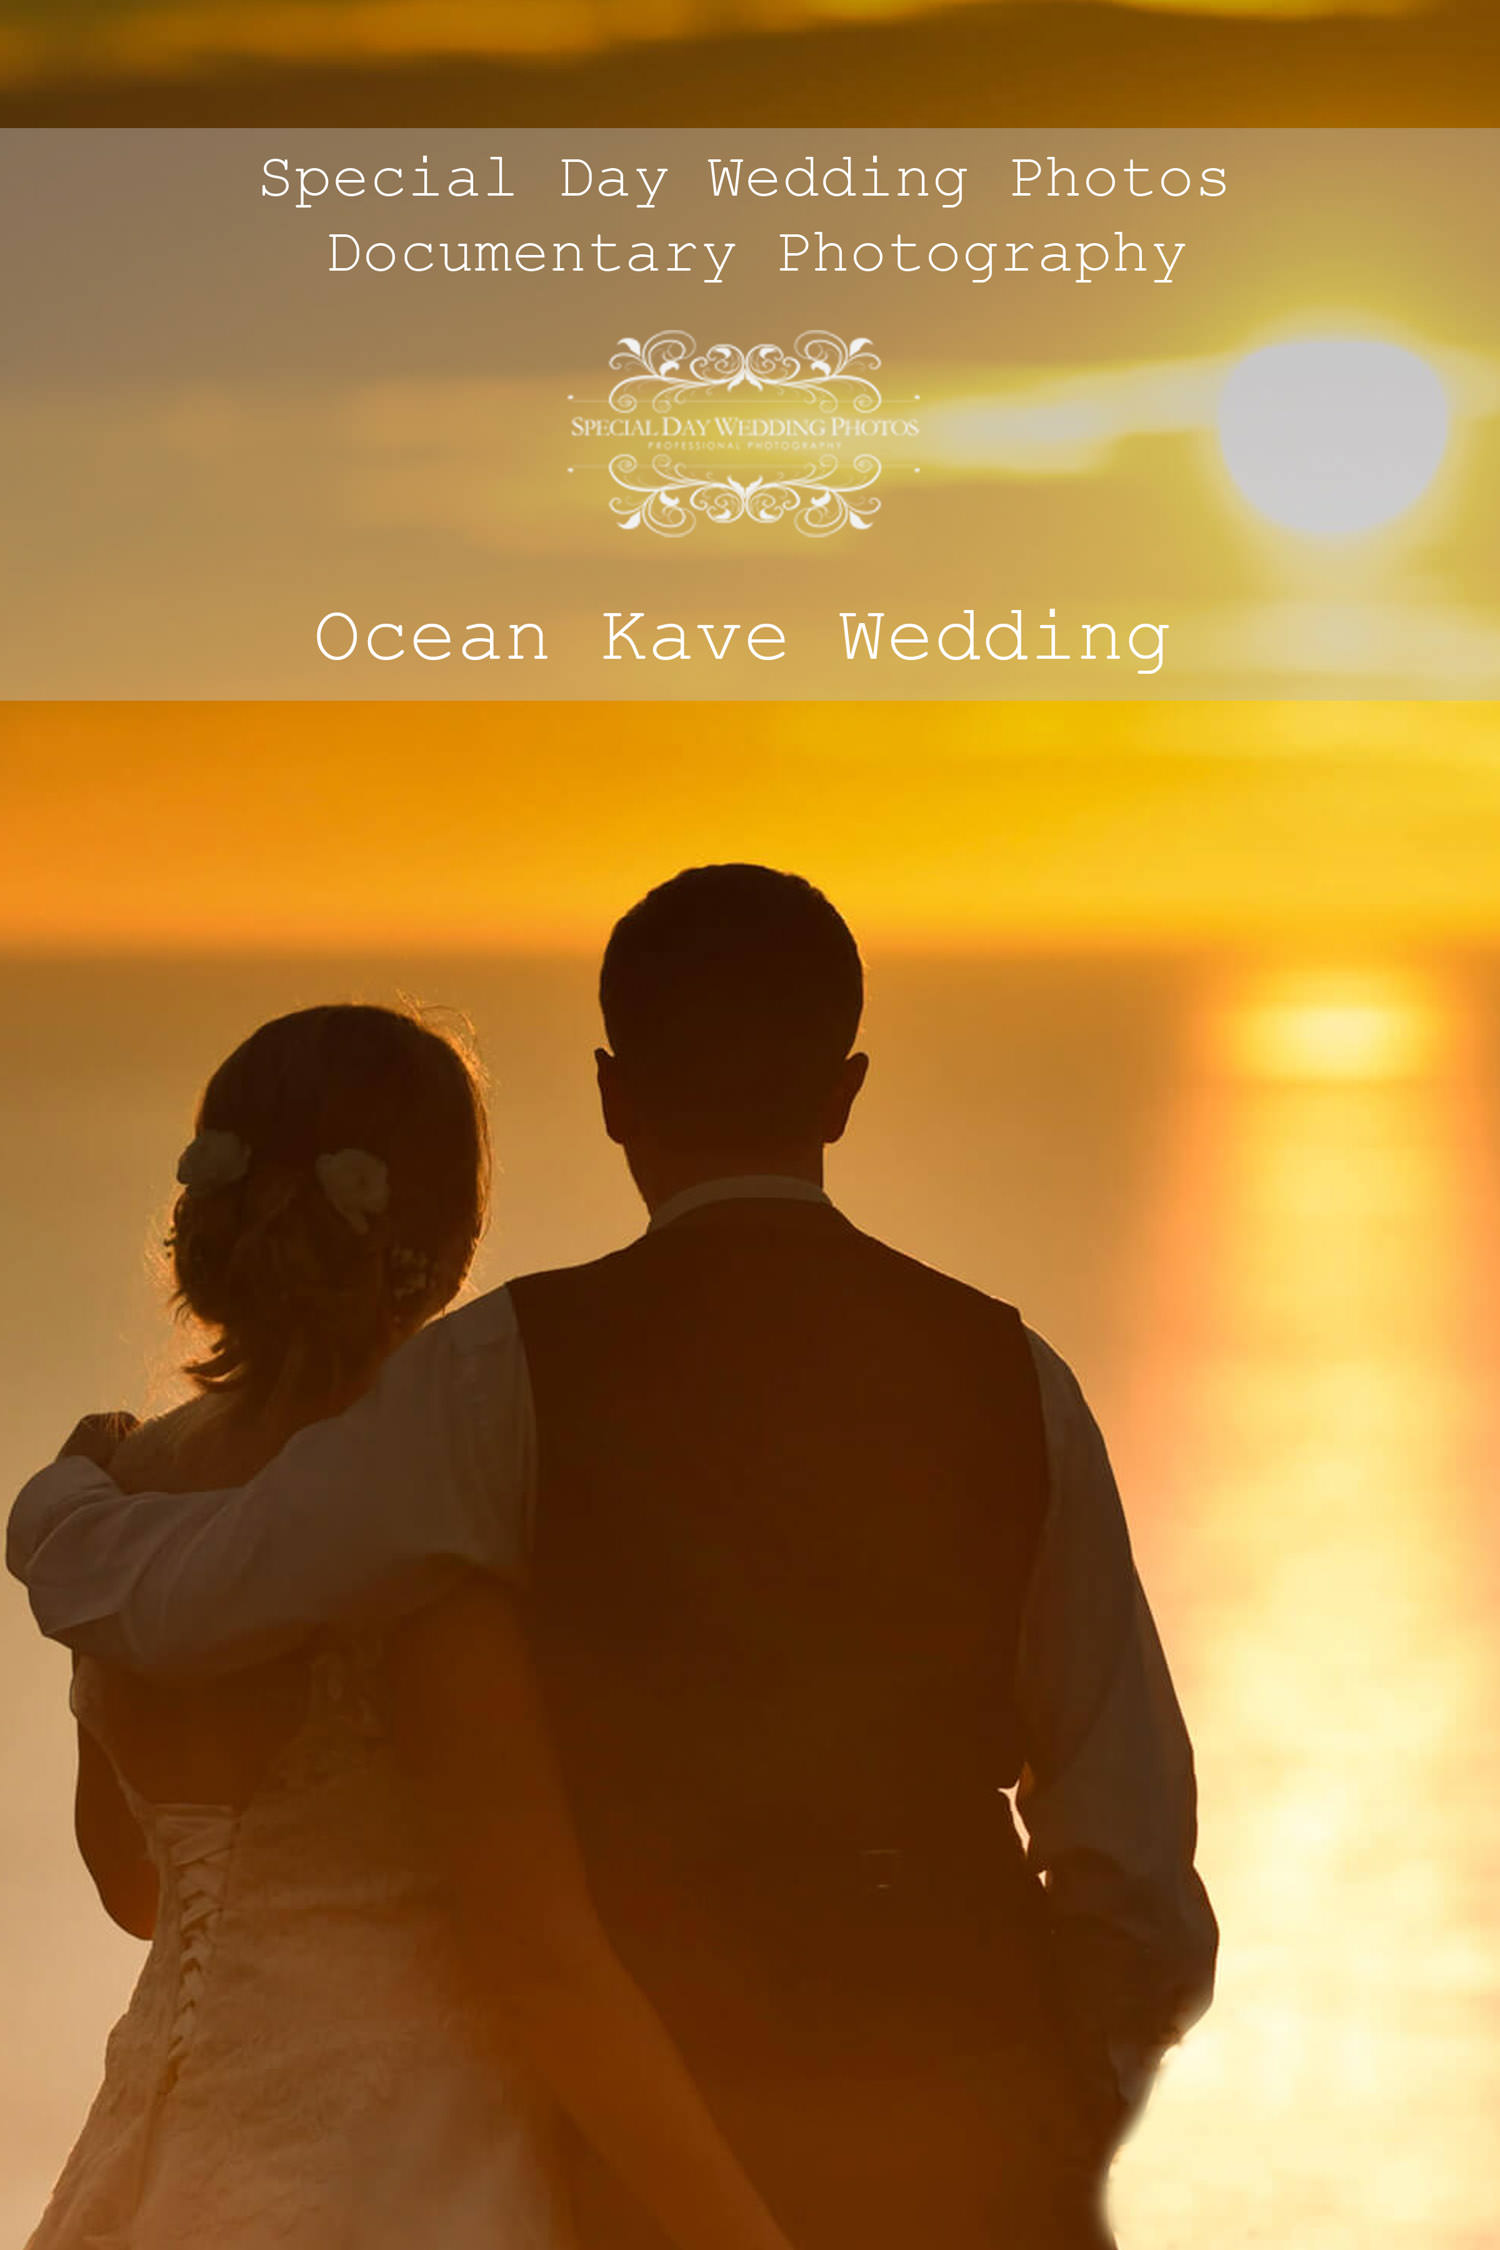 Ocean Kave in Westward Ho! North Devon. A beautiful venue with stunning sunsets.